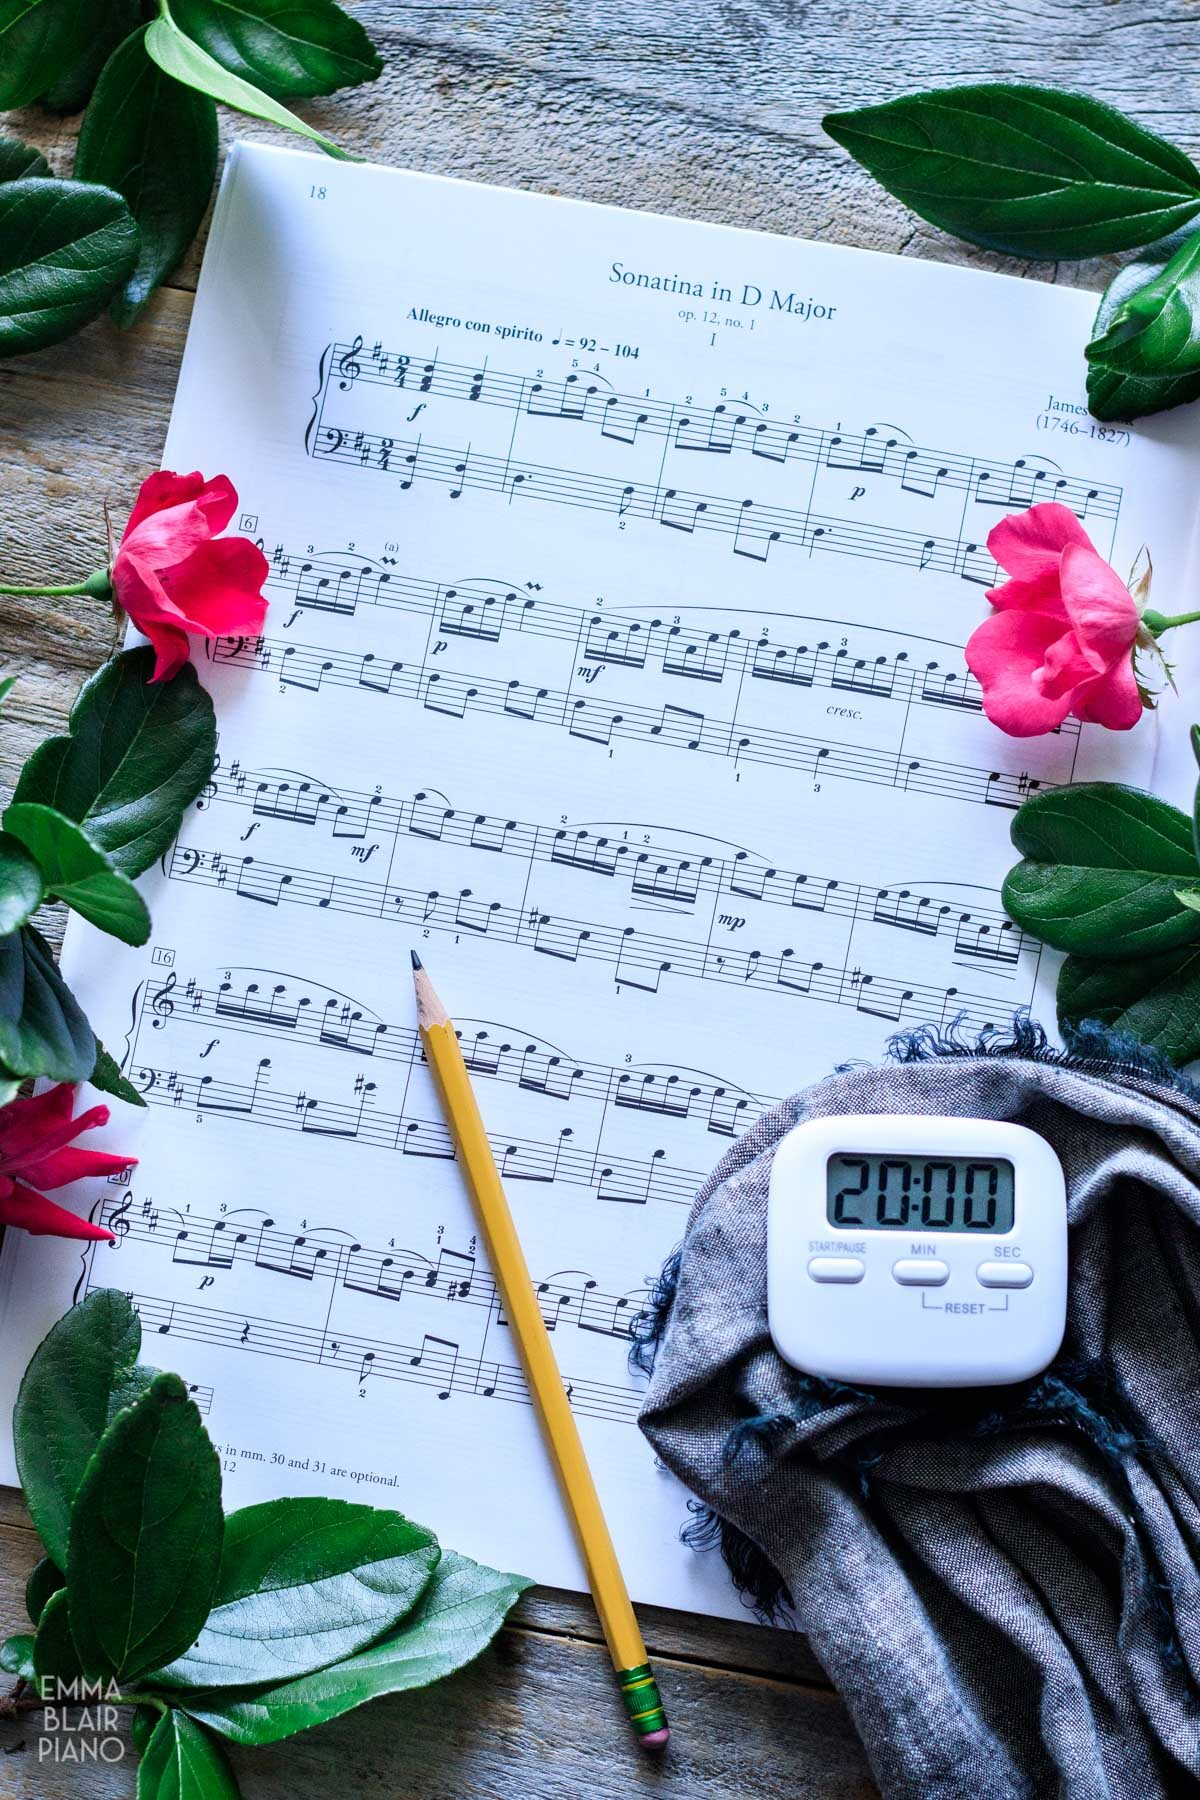 sonatina sheet music with a timer and pencil